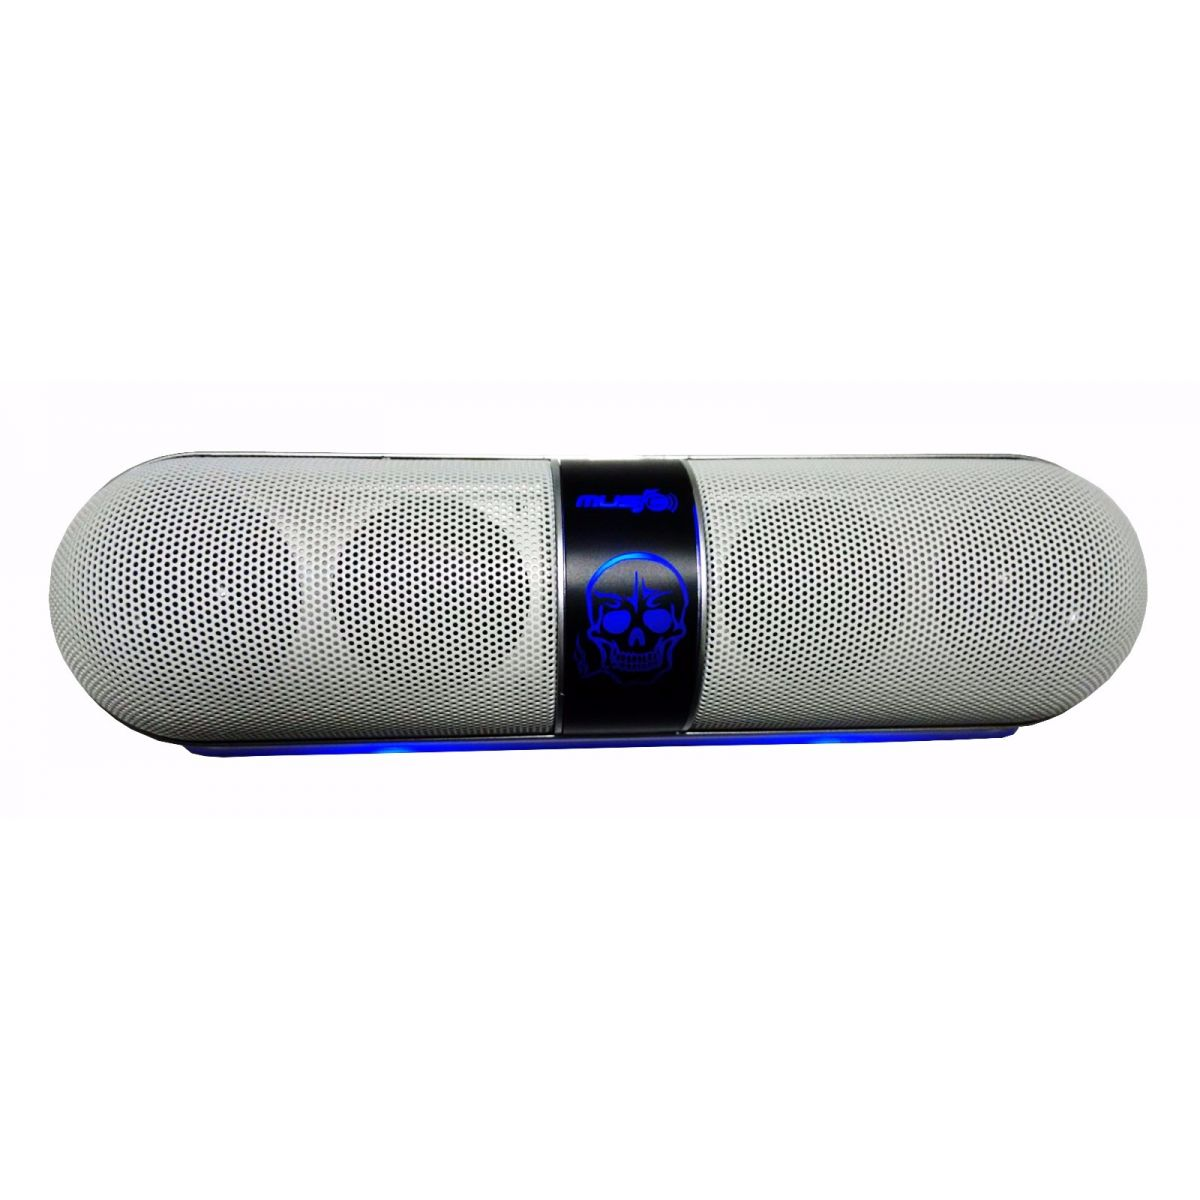 Mini Caixa De Som Bluetooth